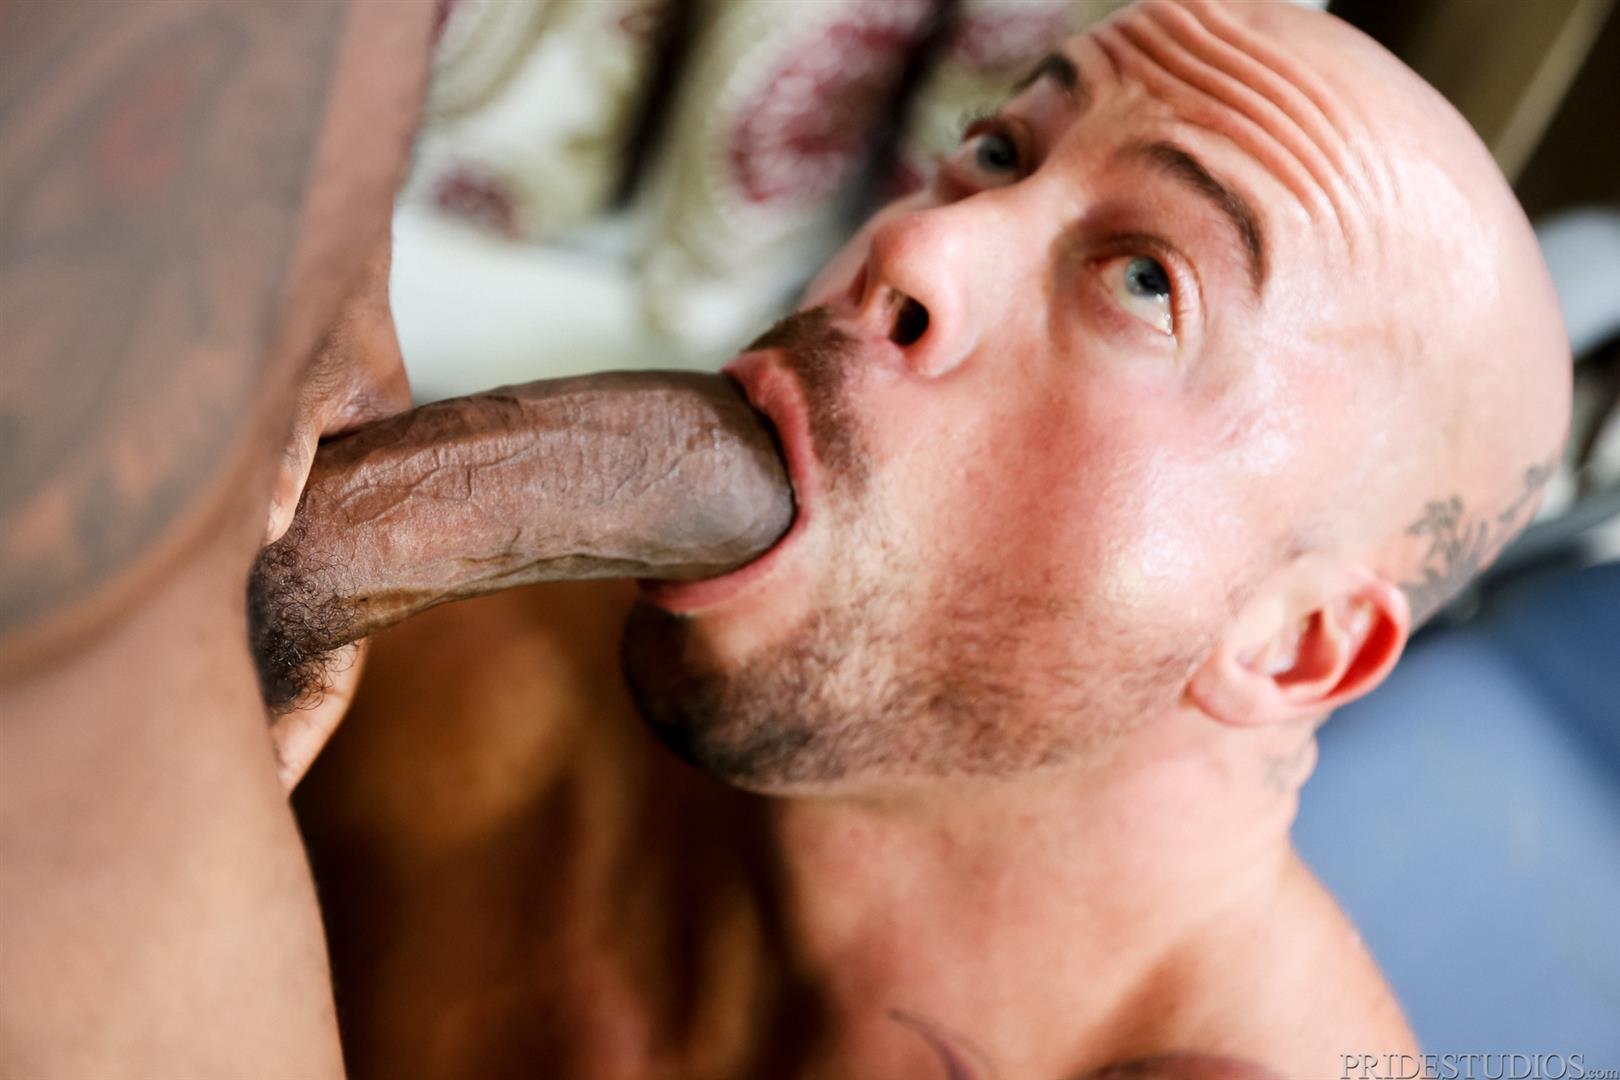 Sean-Duran-and-Osiris-Blade-Extra-Big-Dicks-Black-Cock-Interracial-Amateur-Gay-Porn-07 White Muscle Hunk Takes A Big Black Cock Up The Ass During A Job Interview